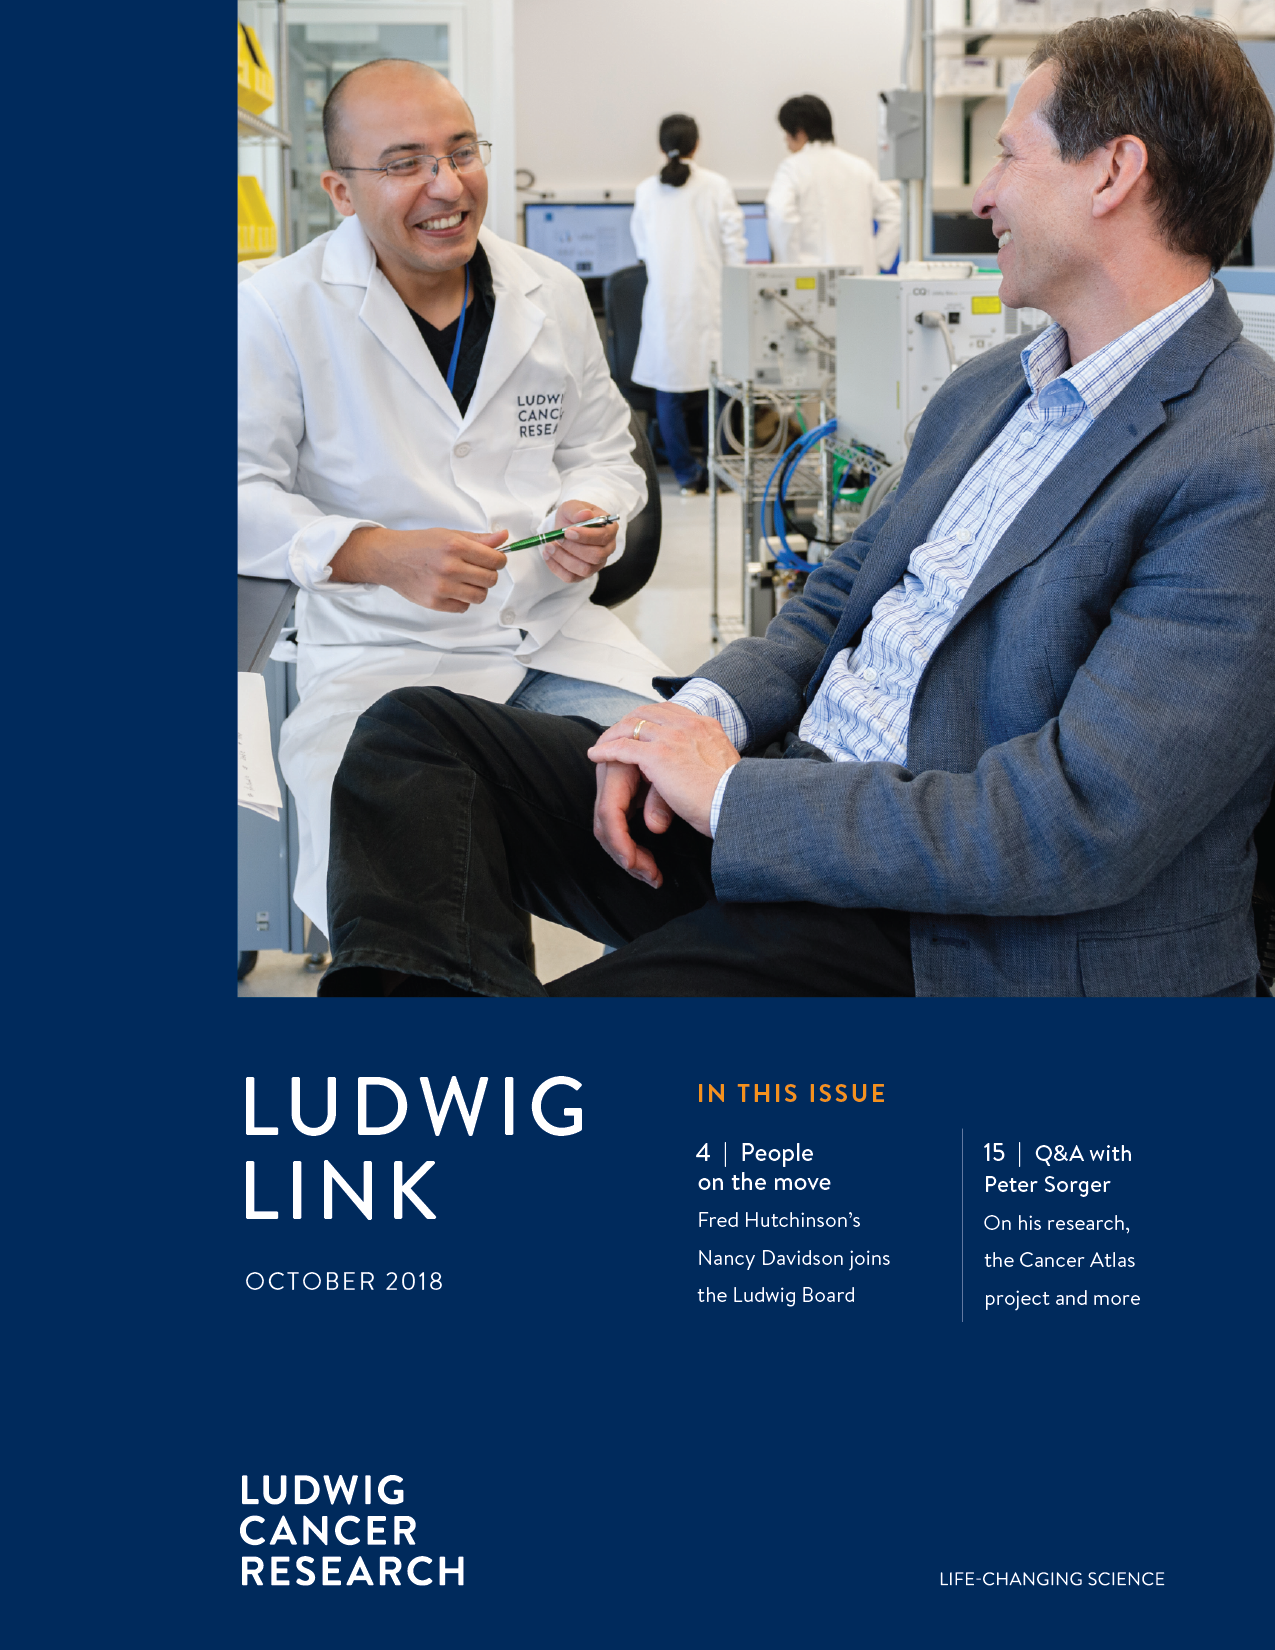 Ludwig Link October 2018 cover